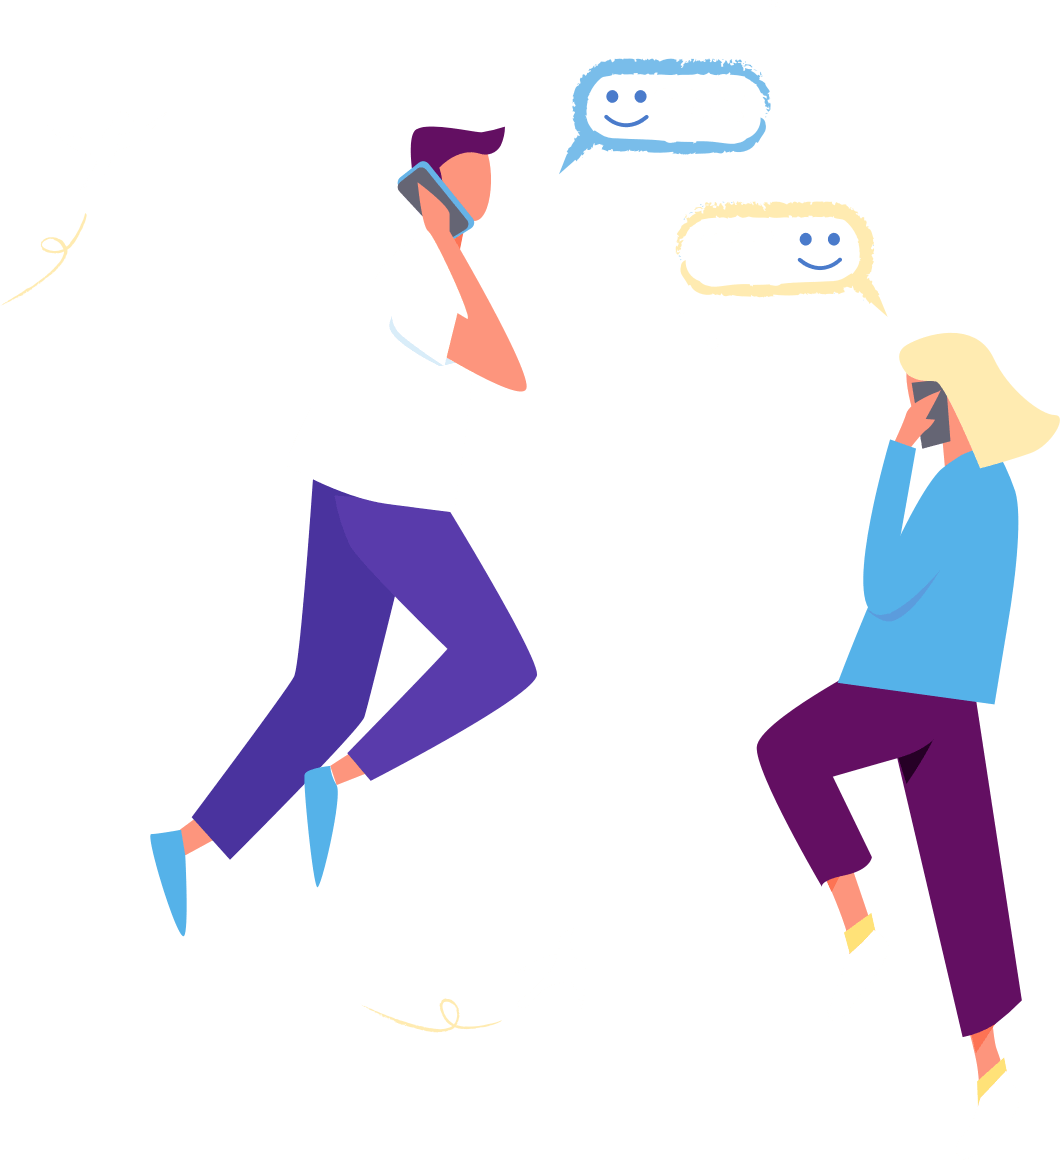 A man and a woman casually float in the air as they talk on the phone